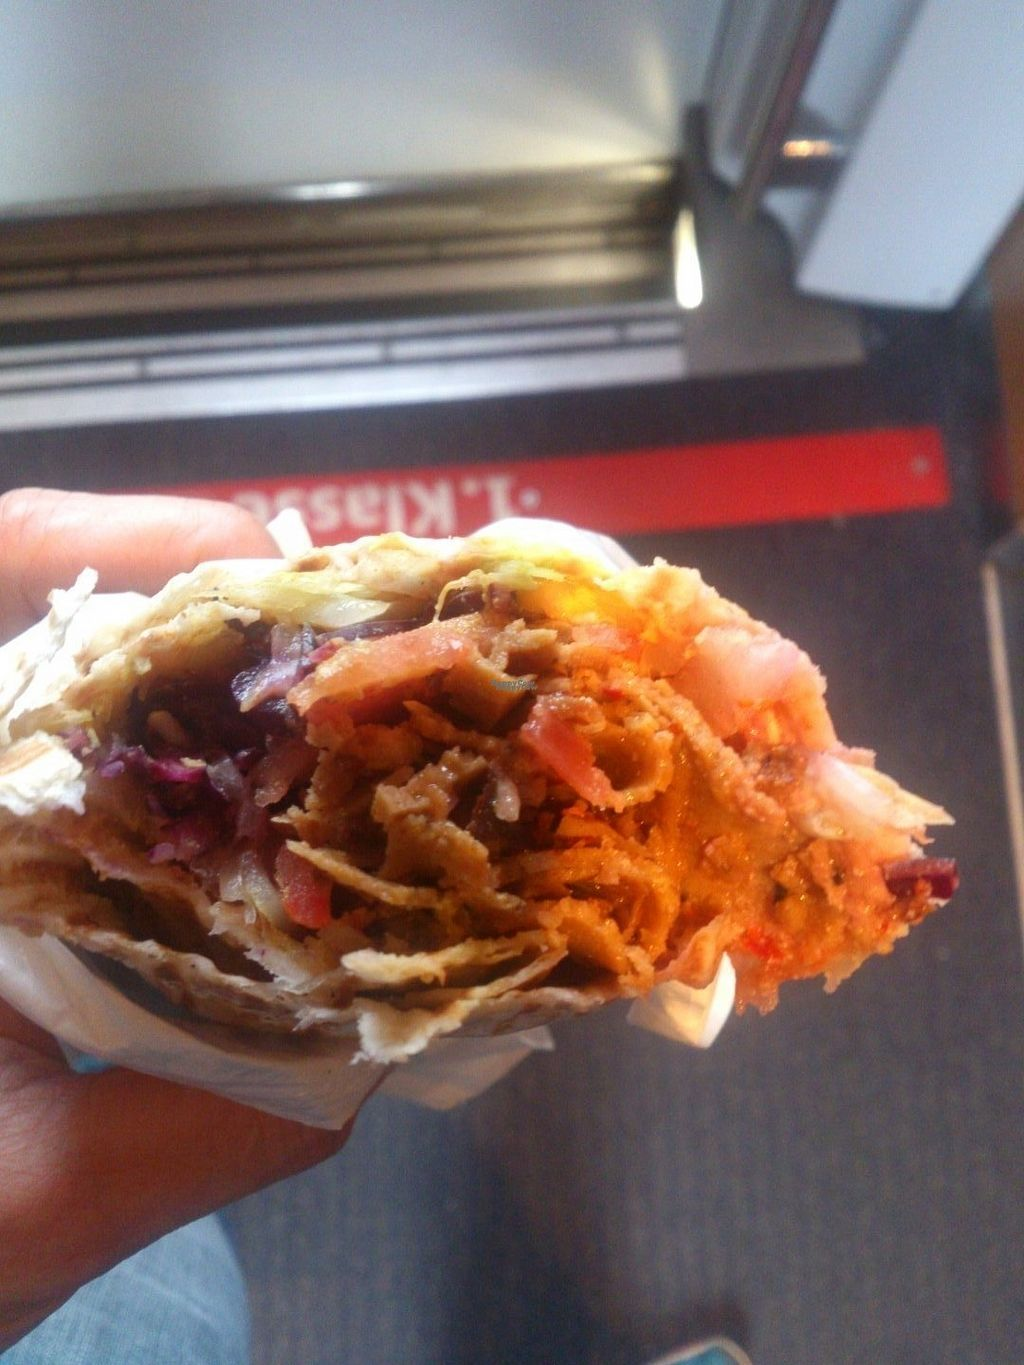 """Photo of CLOSED: Royal Kebabhaus  by <a href=""""/members/profile/Tank242"""">Tank242</a> <br/>the yummy, ultratasty product <br/> September 1, 2016  - <a href='/contact/abuse/image/28298/172884'>Report</a>"""